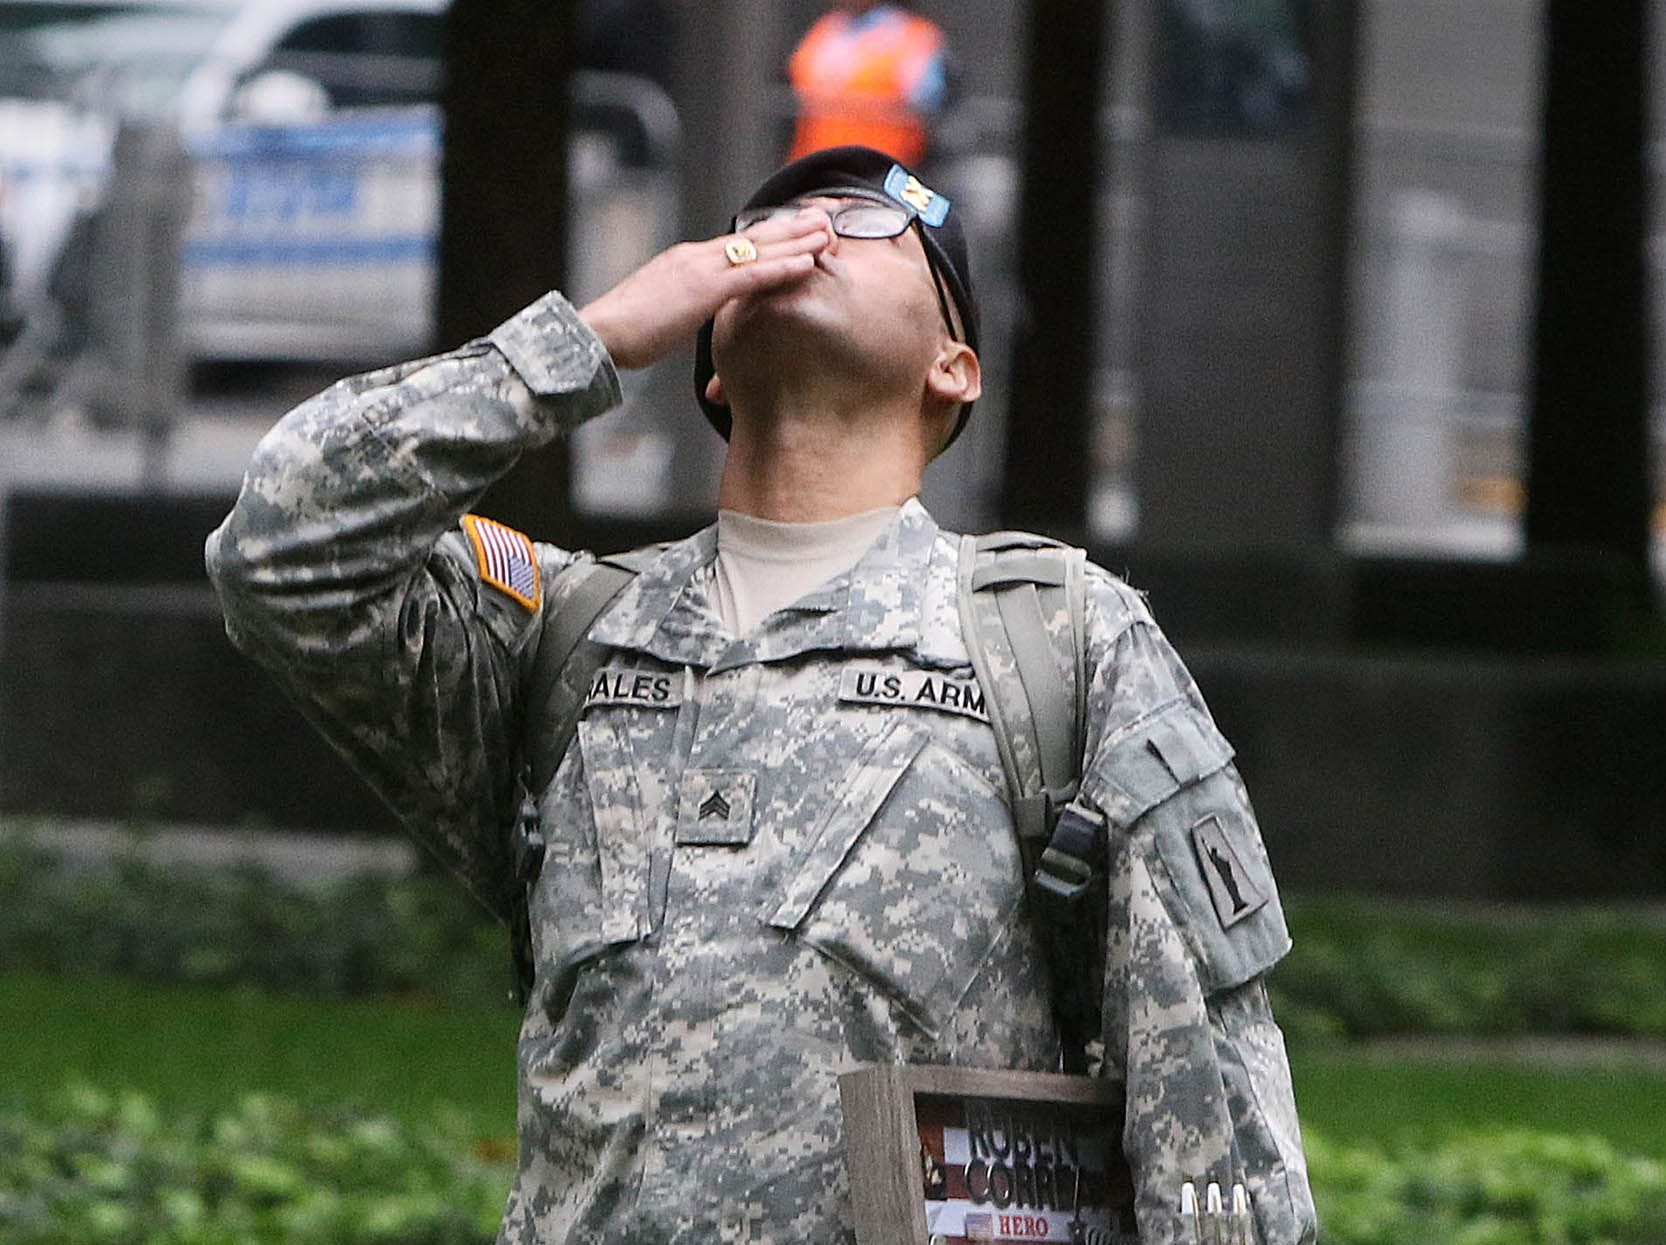 Army Sgt. Edwin Morales of the Bronx kisses up to the sky as part of honoring his cousin, RubenCorrea a NY firefighter who died on 911.  This was done during the ceremonies at the National September 11 Memorial observing the 17th anniversary of the attacks that killed people in Manhattan, the Pentagon, Flight 93 and honoring those who died in the 1993 World Trade Center bombing. Pedota POY 2018